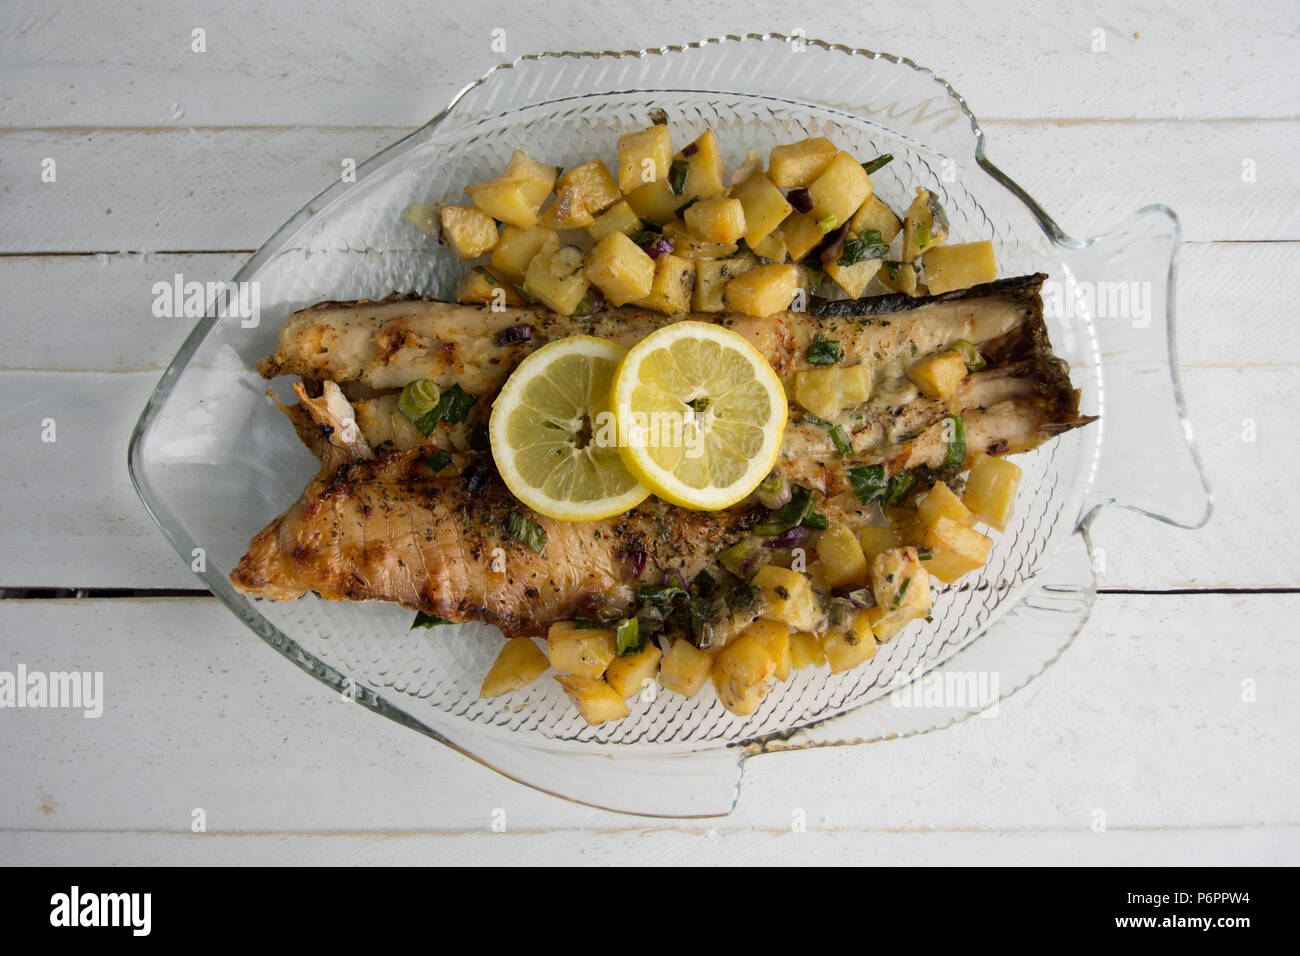 Fish and chips with fresh herbs - Stock Image